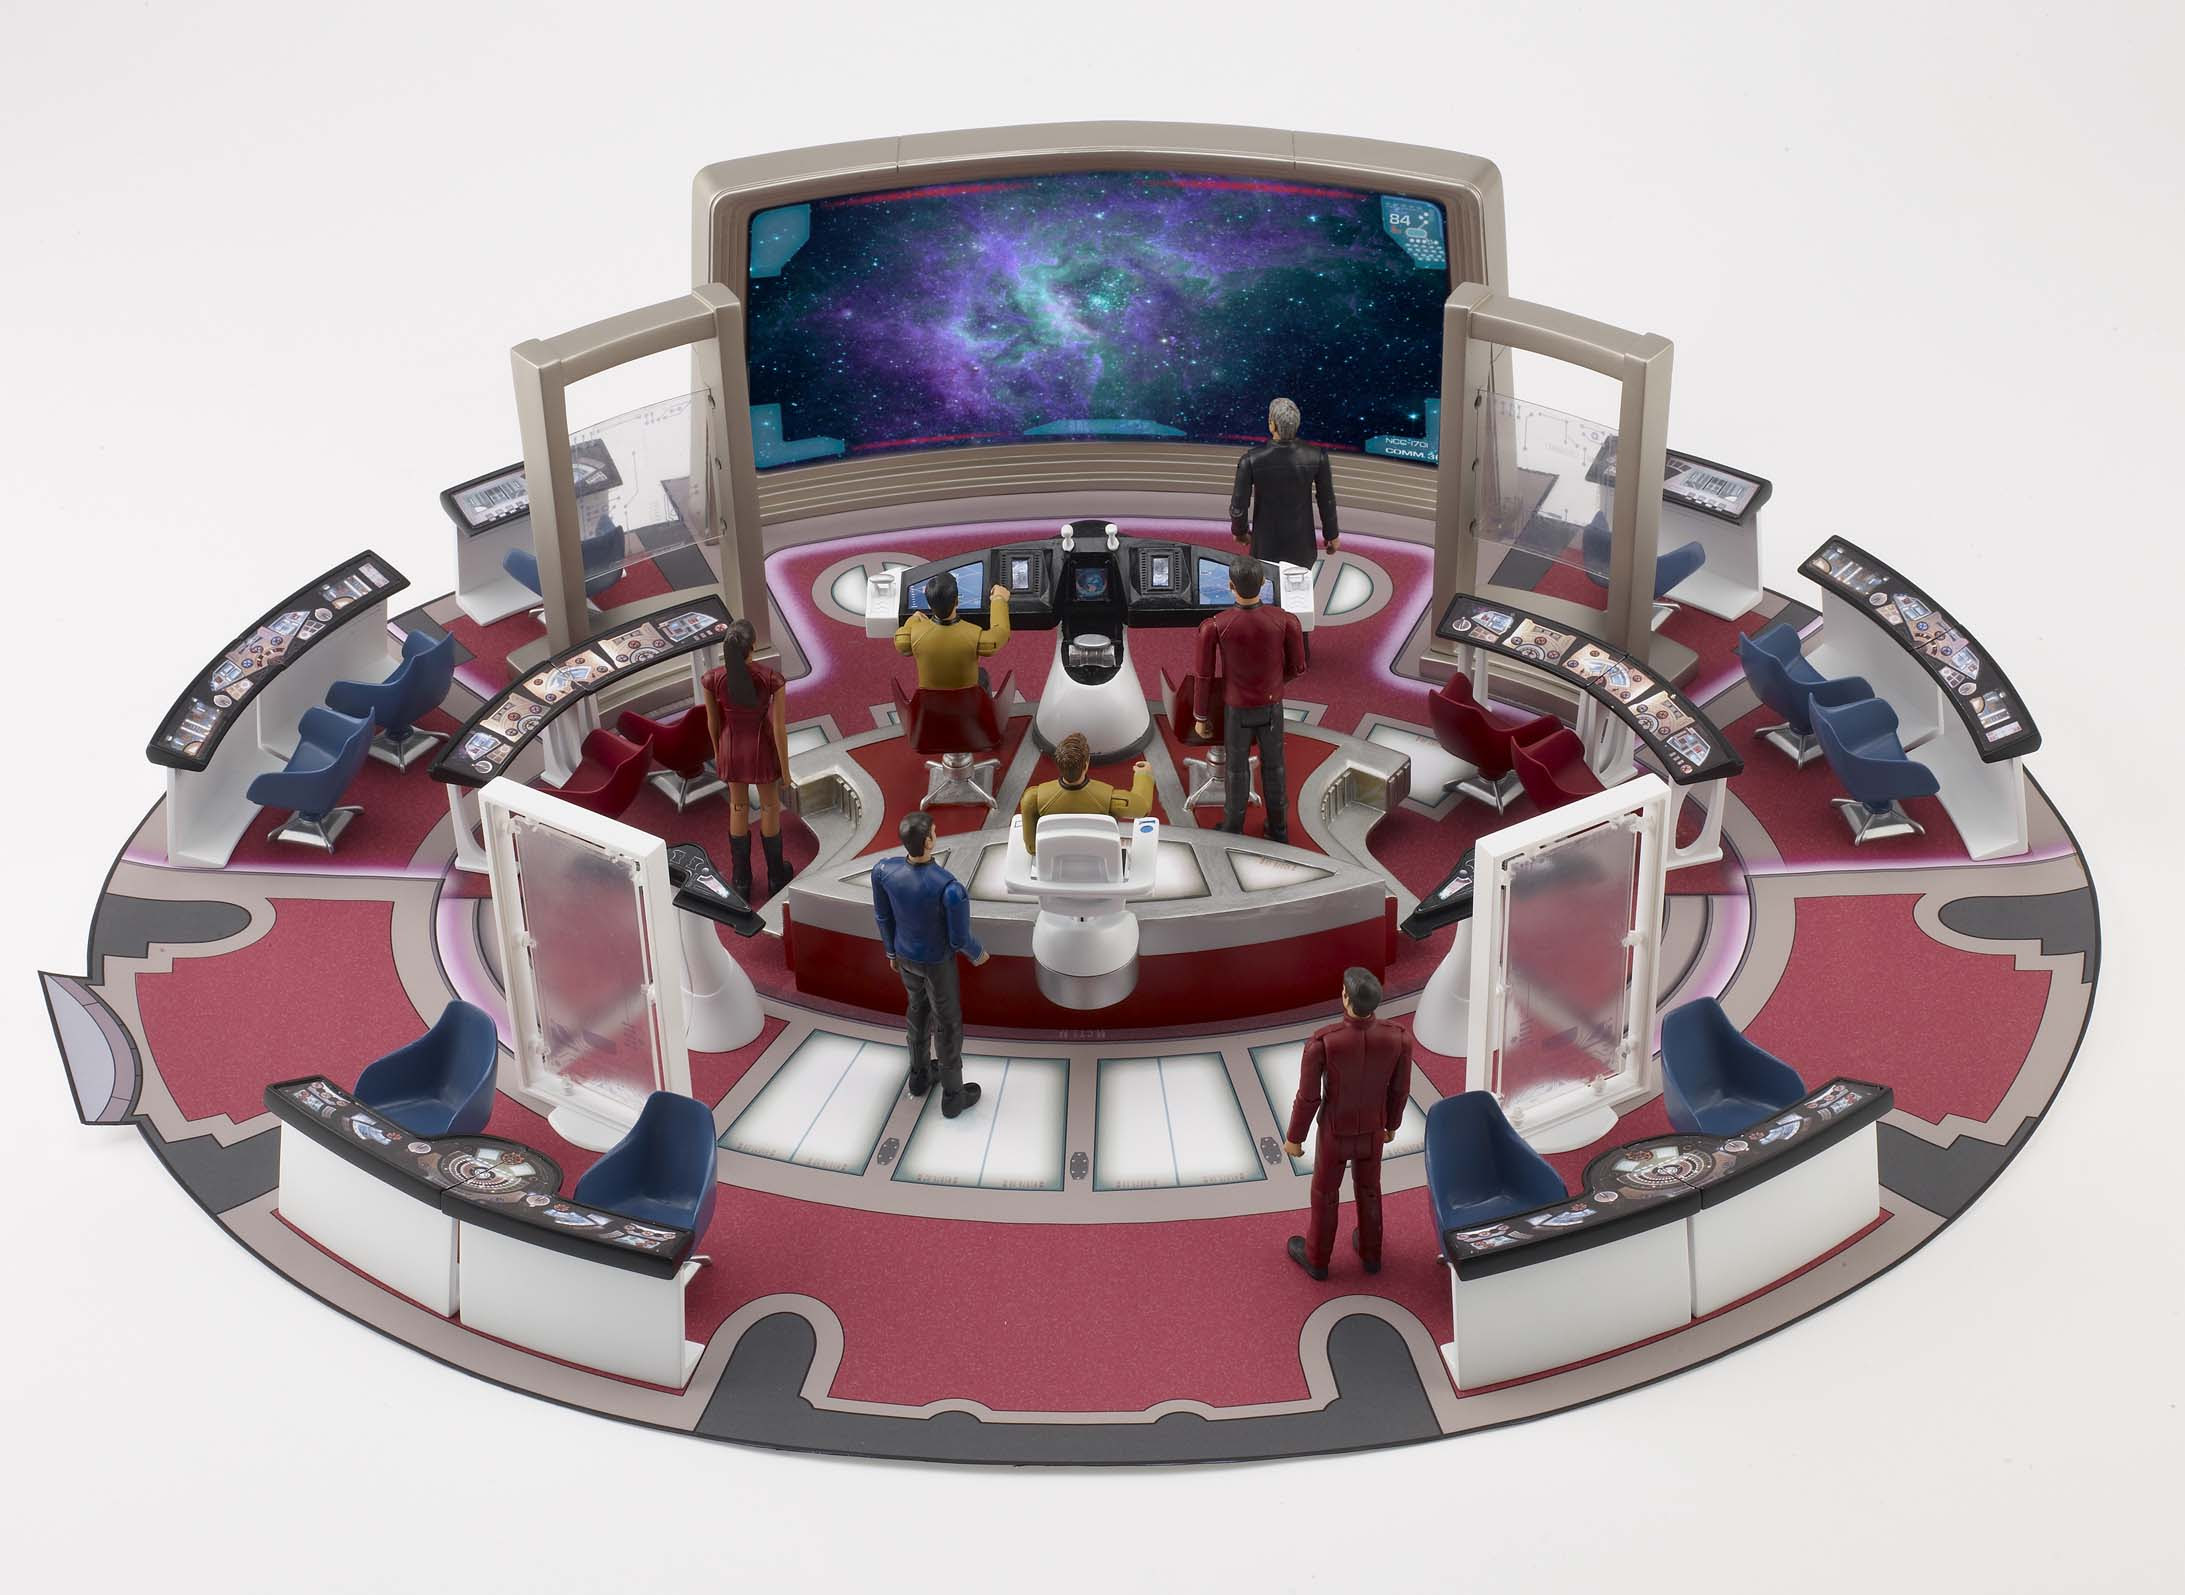 Interactive playset simulates 'Transport feature' from Star Trek movie.